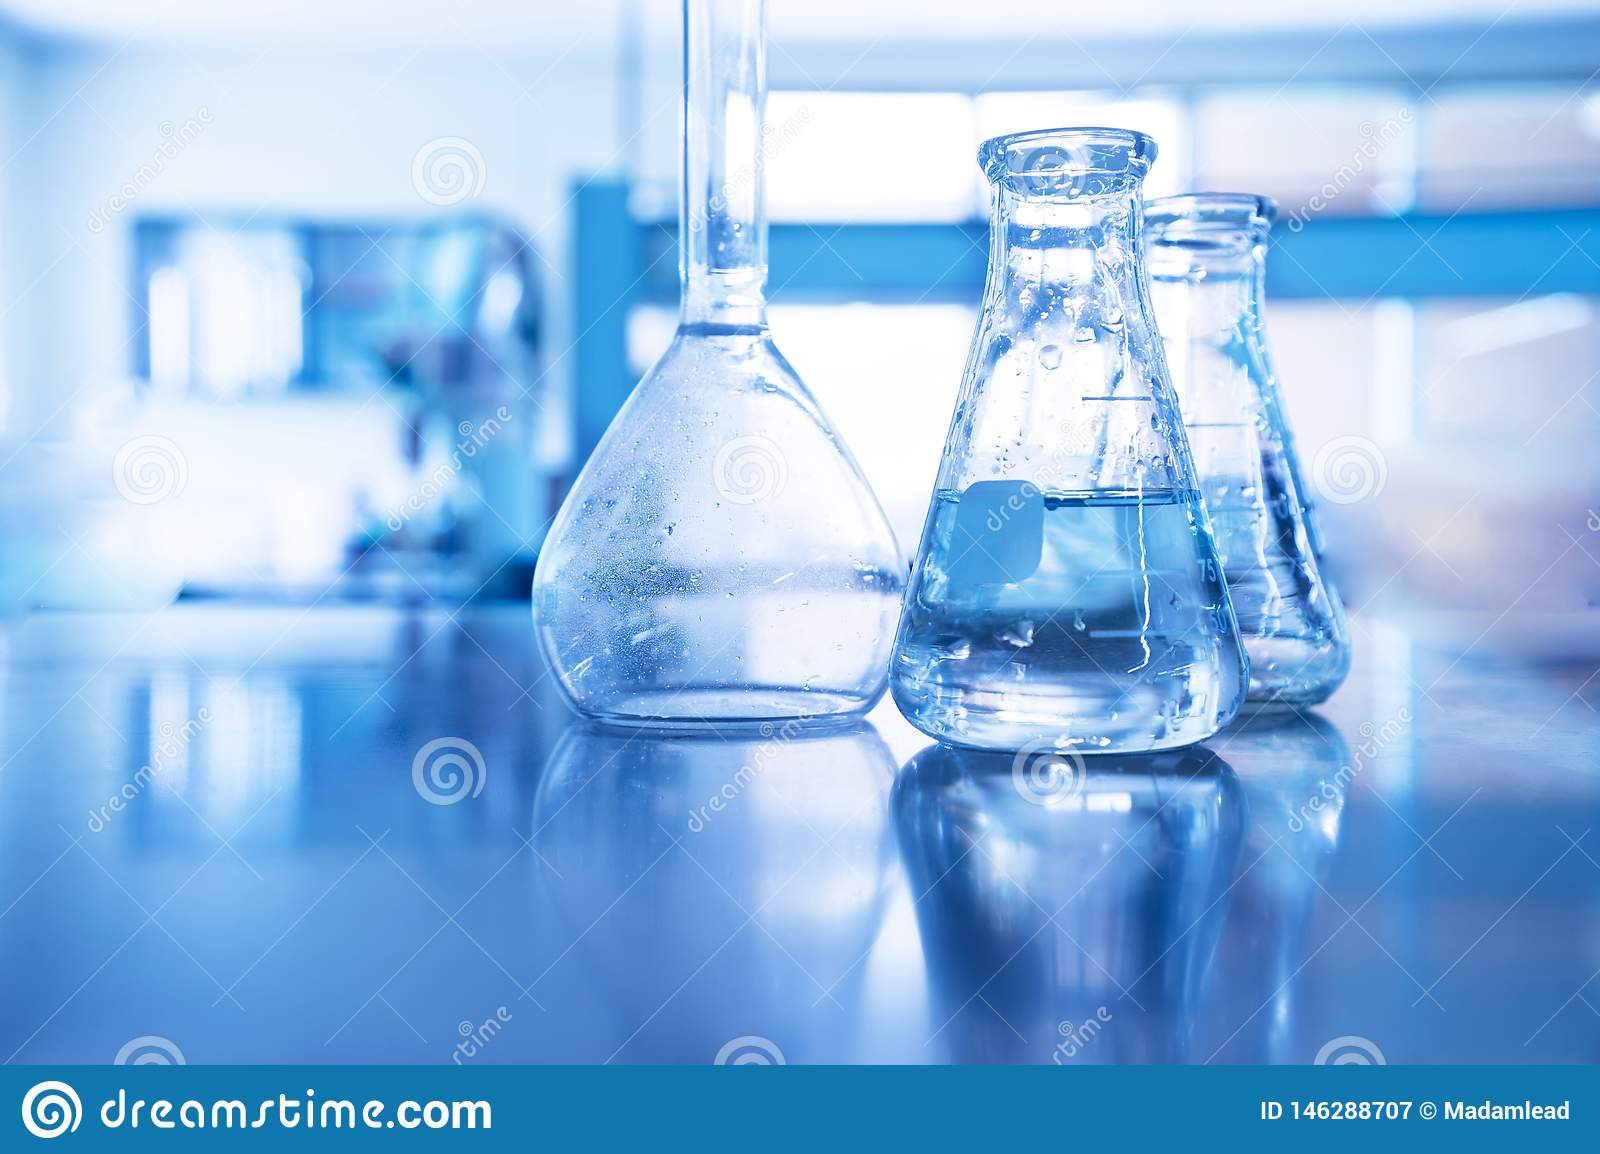 Conical and volumetric glass flask in science laboratory for blue education technology background